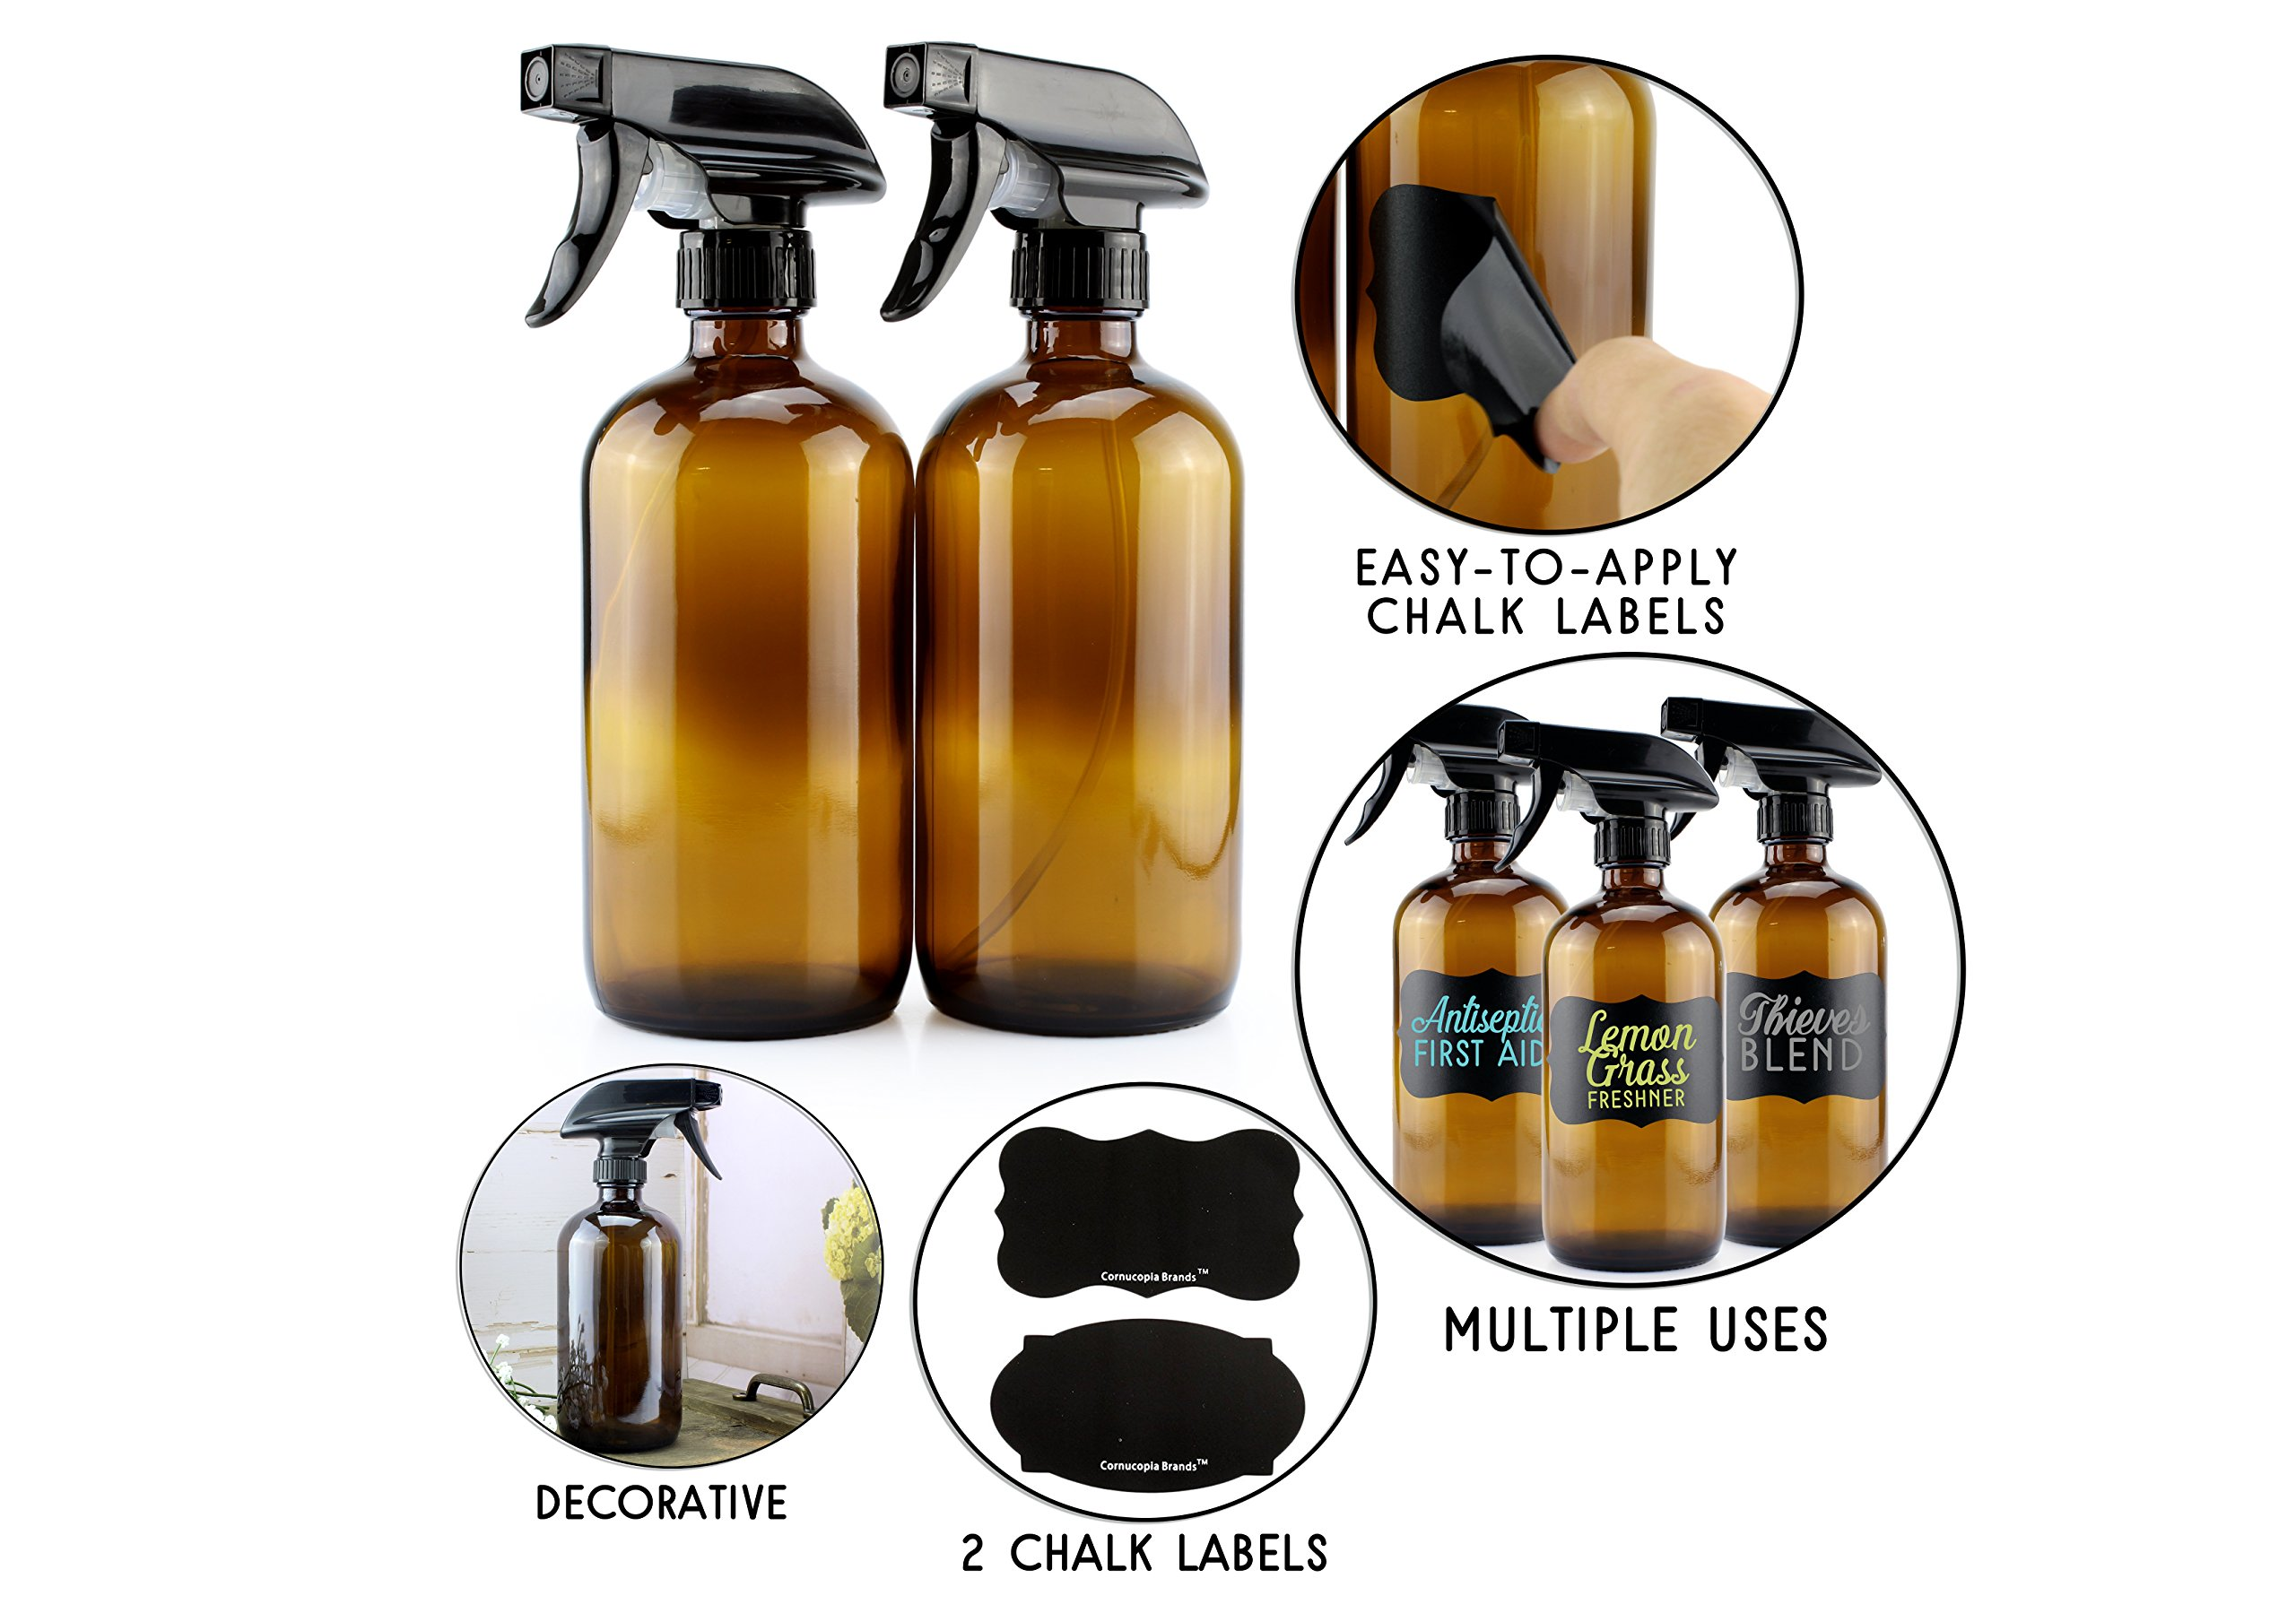 16-Ounce Amber Glass Spray Bottles w/Reusable Chalk Labels (2 Pack), Heavy Duty Mist & Stream 3-Setting Sprayer; Great for Essential Oils by Cornucopia Brands (Image #2)